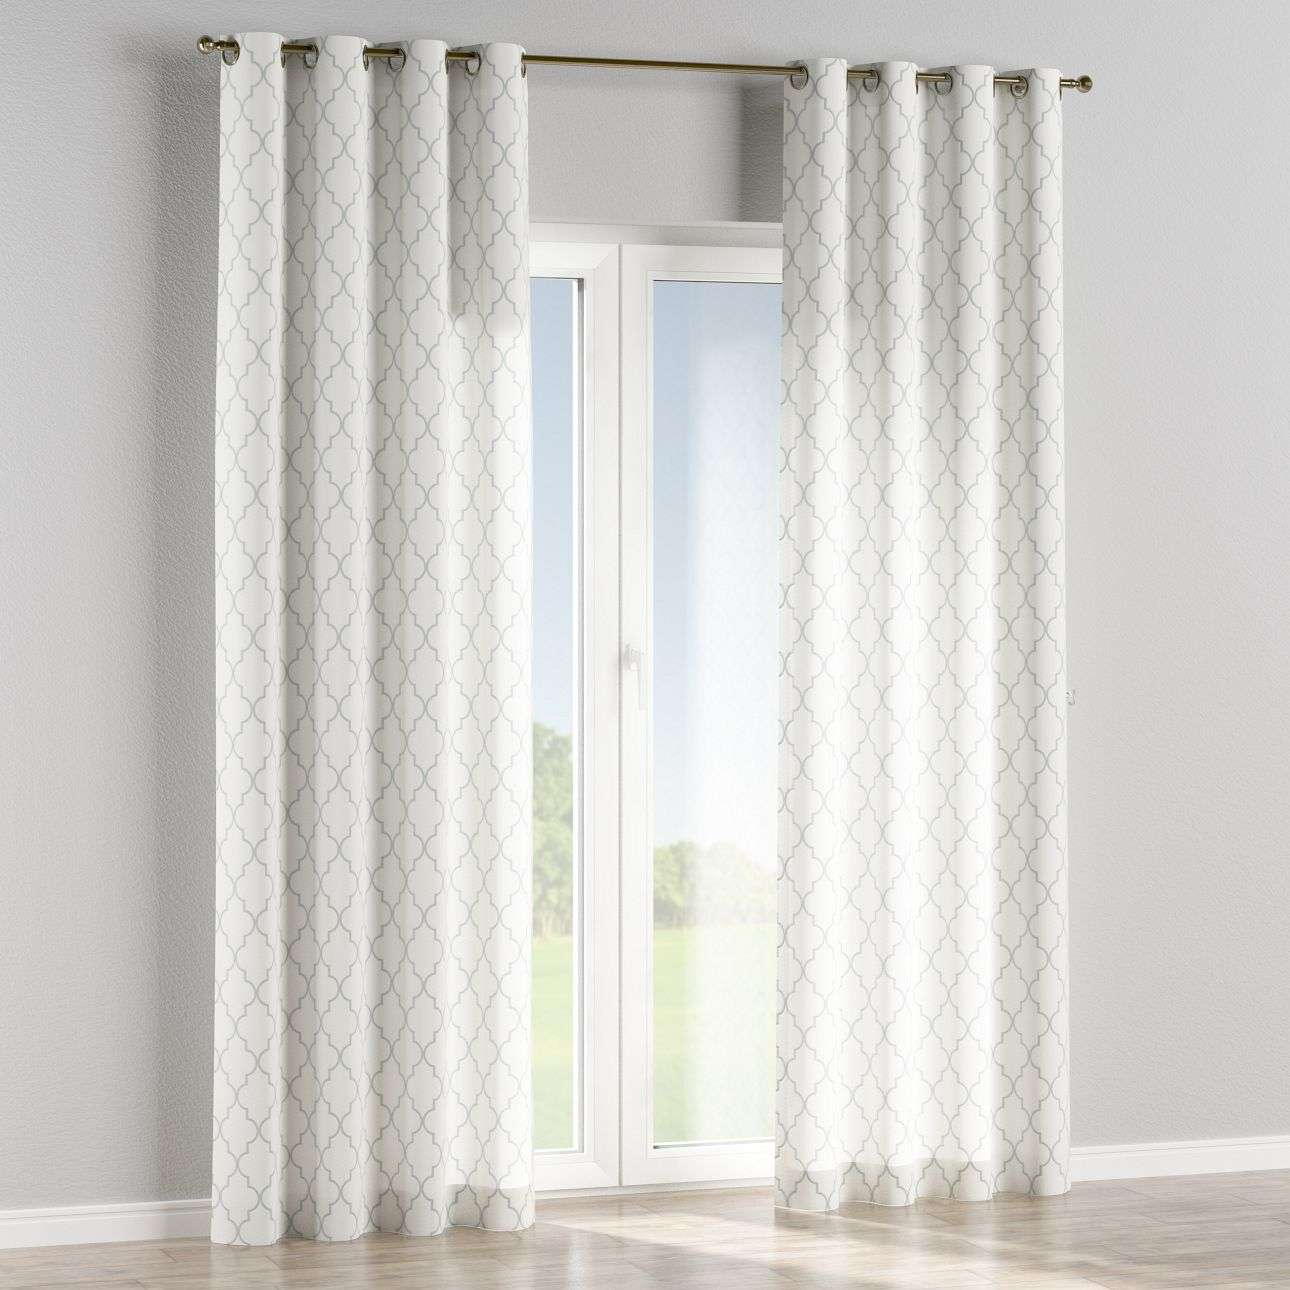 Eyelet curtains 130 x 260 cm (51 x 102 inch) in collection Comic Book & Geo Prints, fabric: 137-85